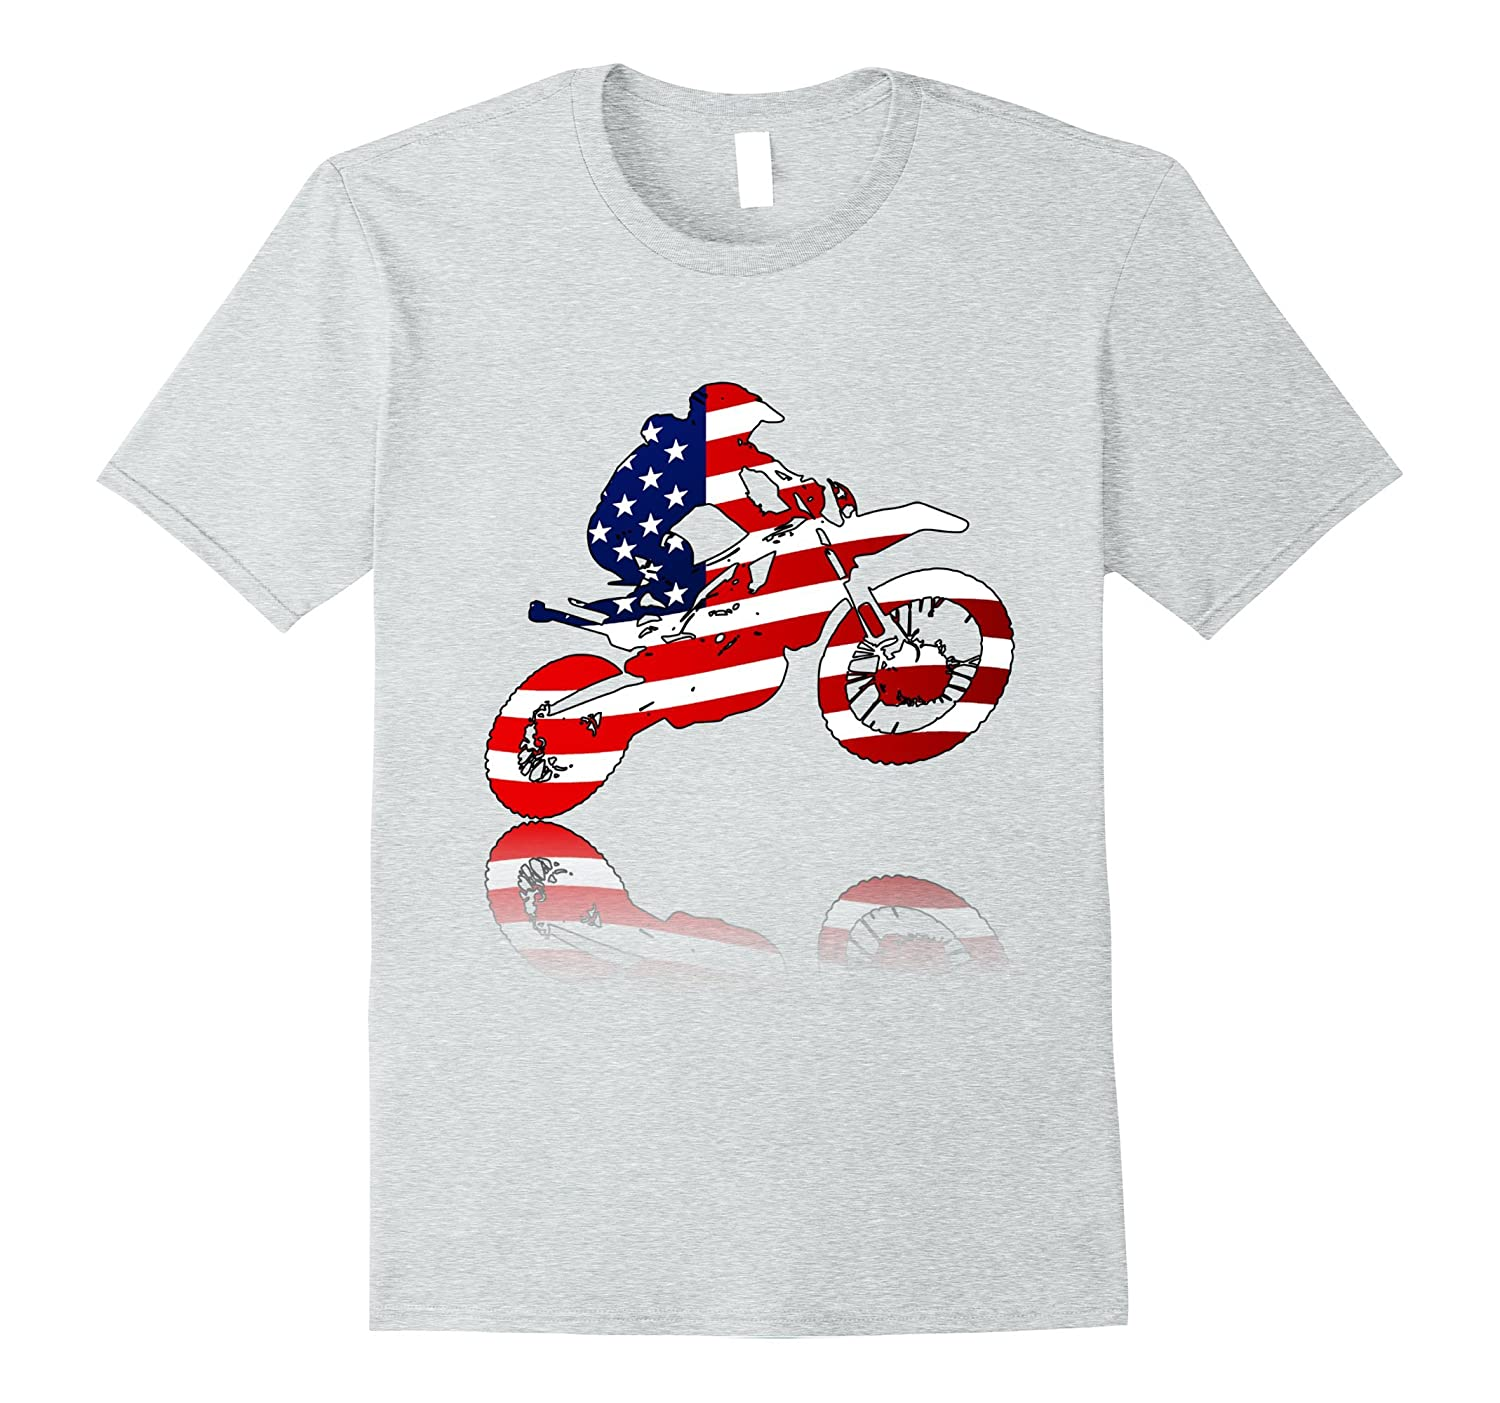 Motocross Motorcycle Patriotic Dirt Bike T-shirt-4LVS